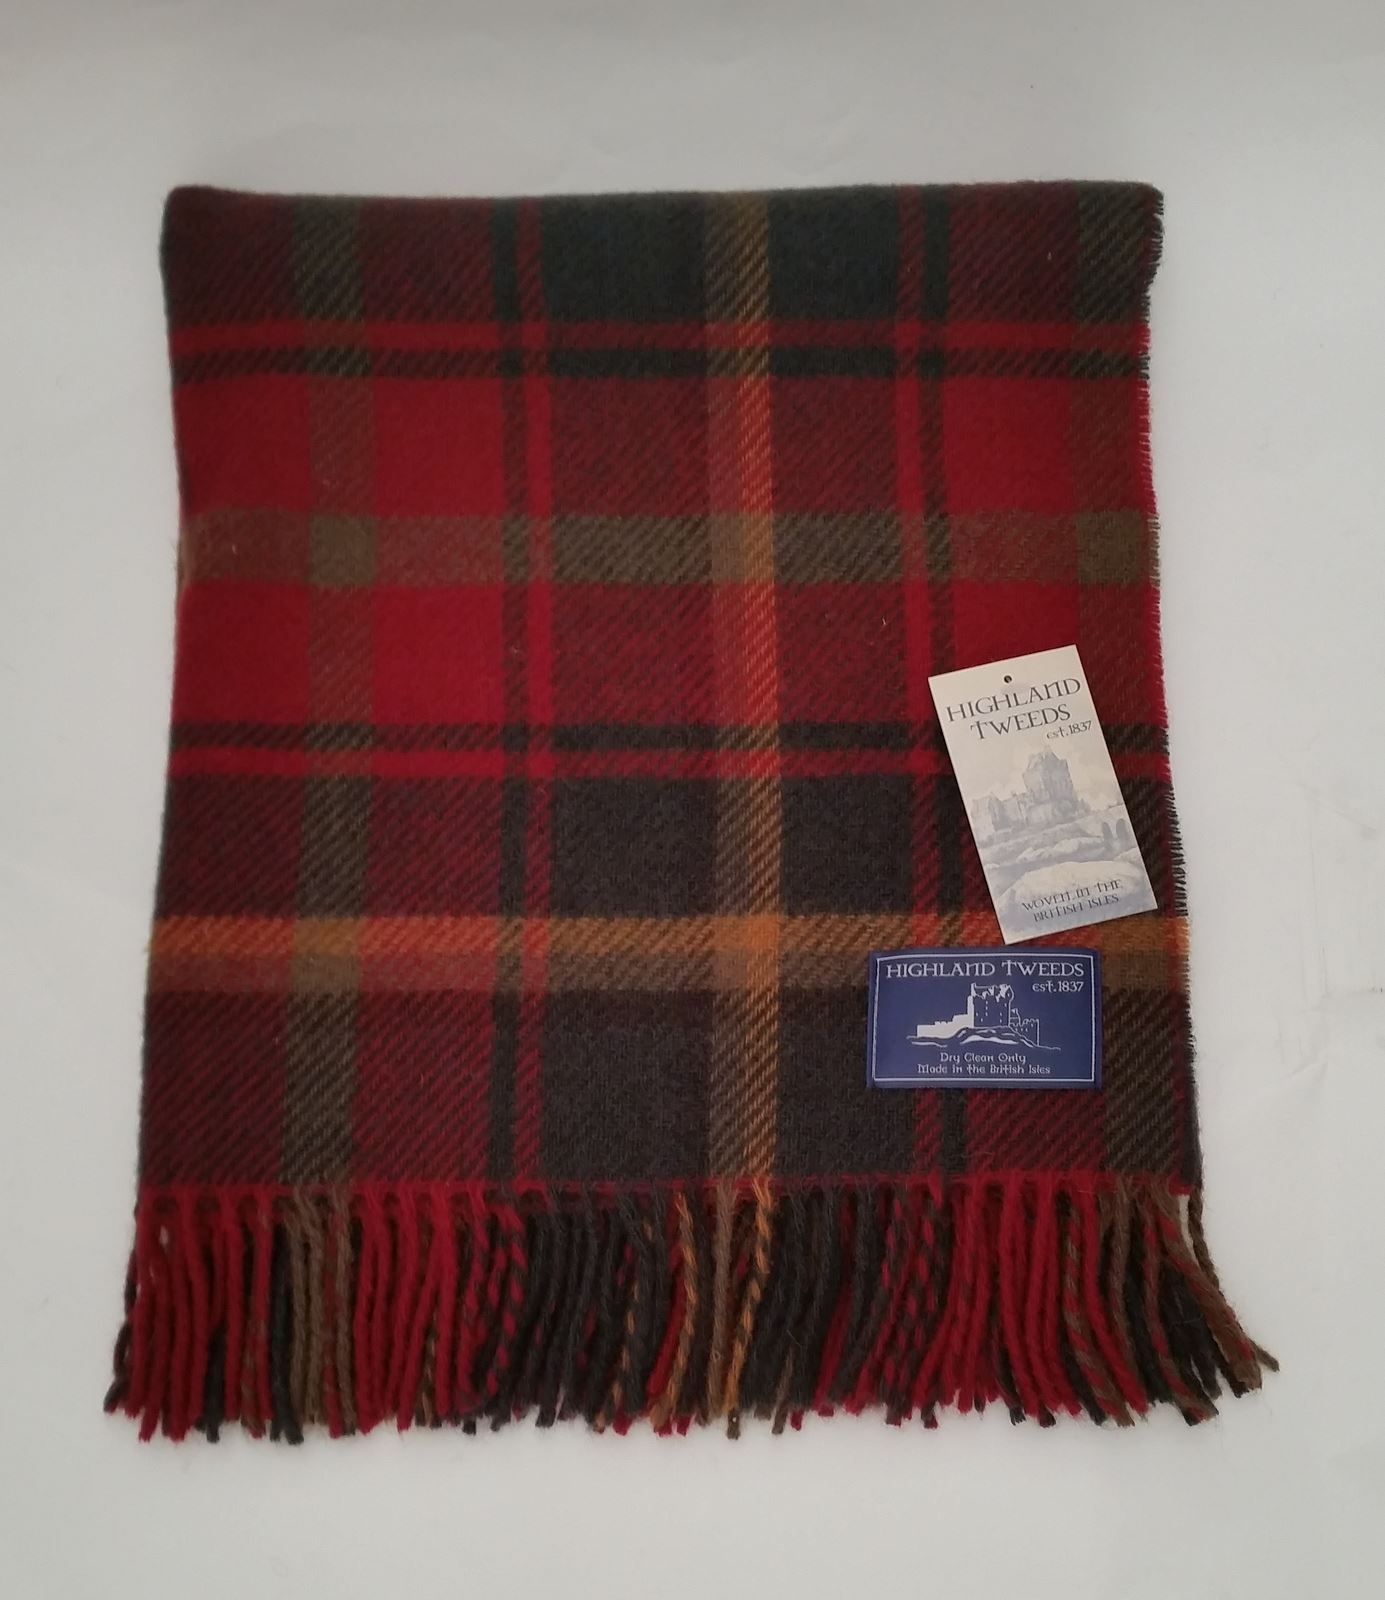 Highland Tweeds Tartan Picnic Blanket 100 Wool Throw Rug